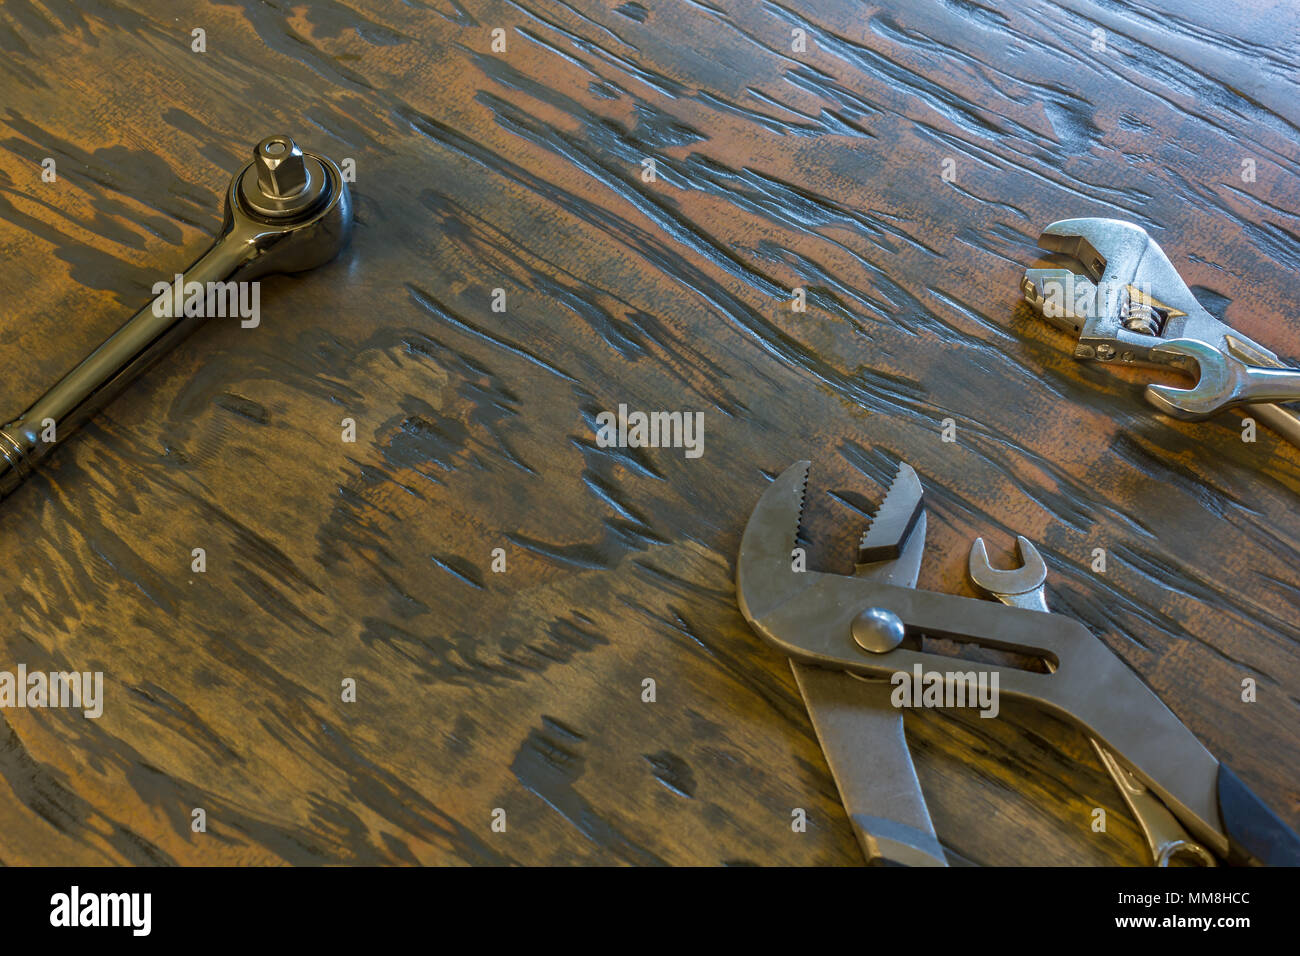 wrenches and tolls on wood board - Stock Image